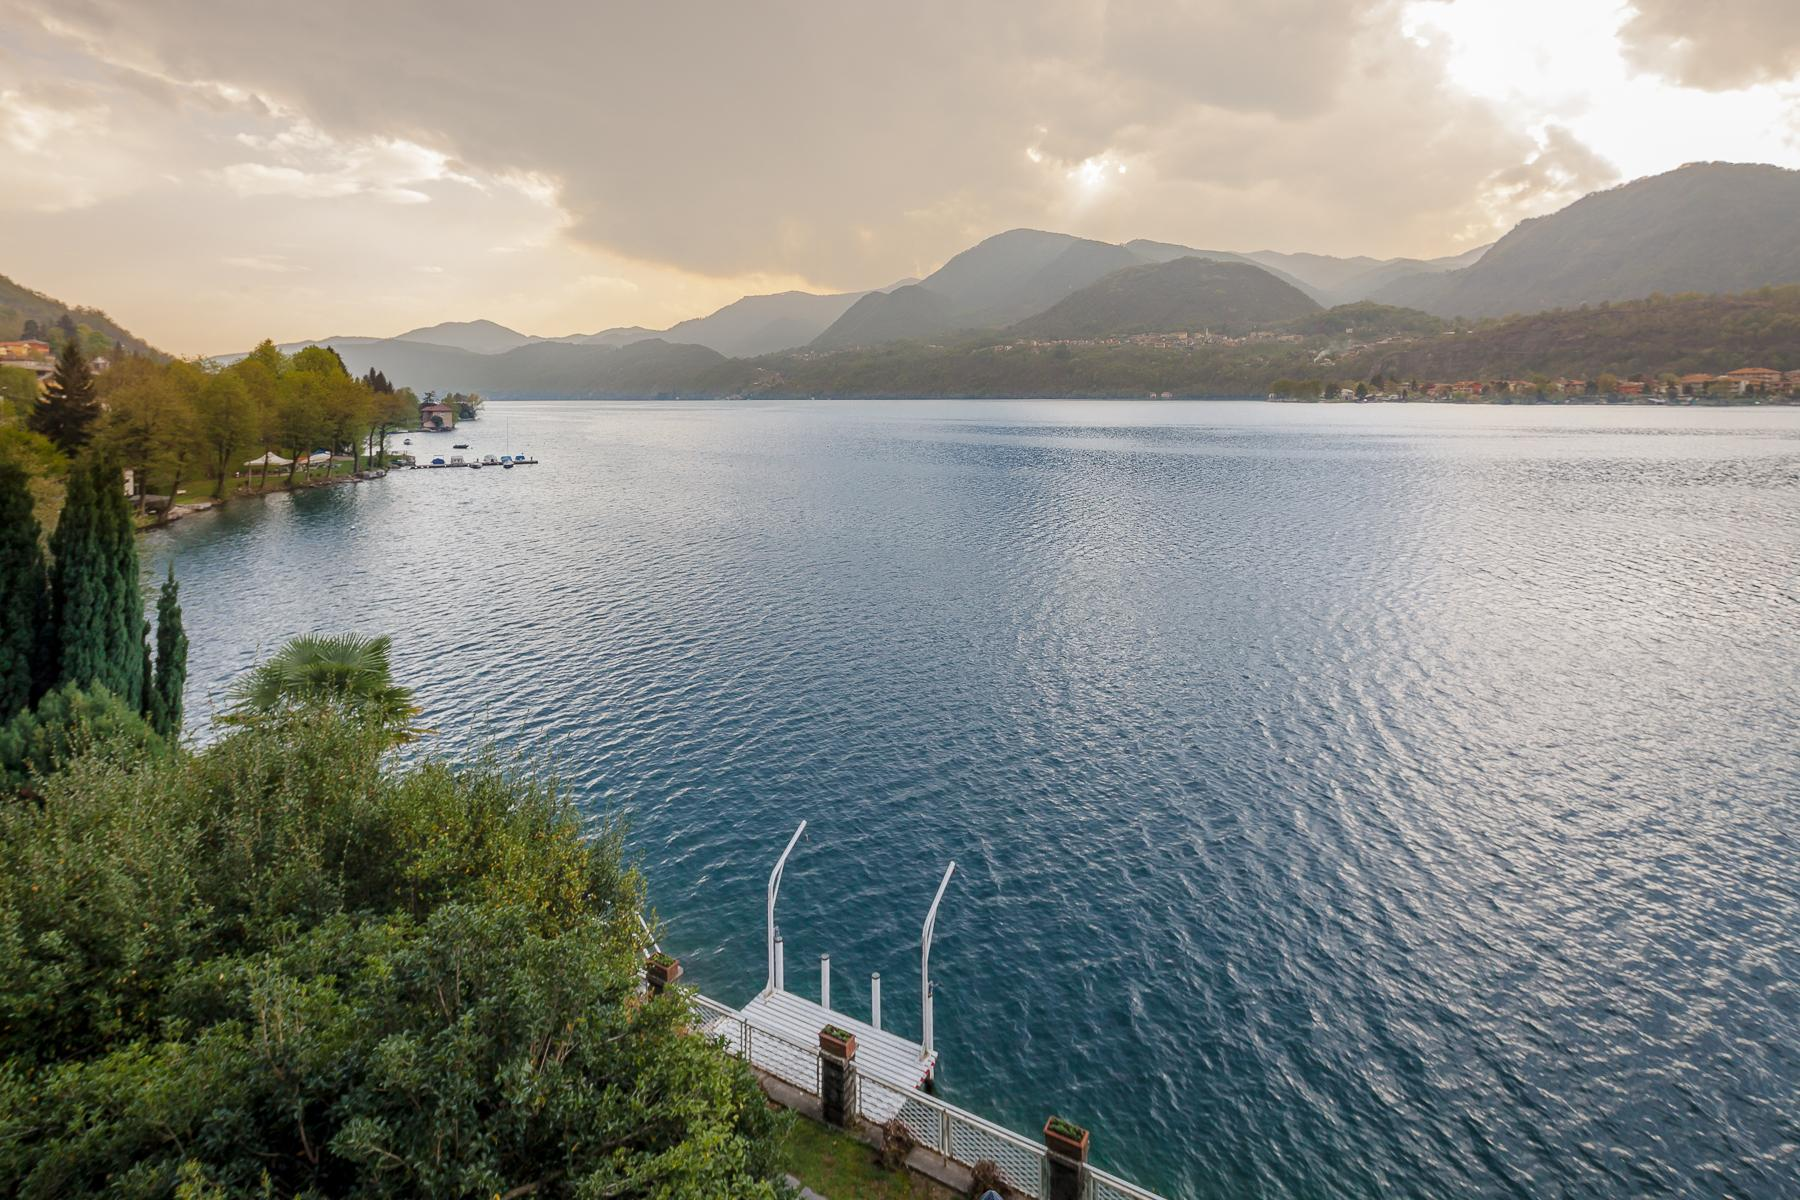 The 'Italian flavor' on Lake Orta - 24